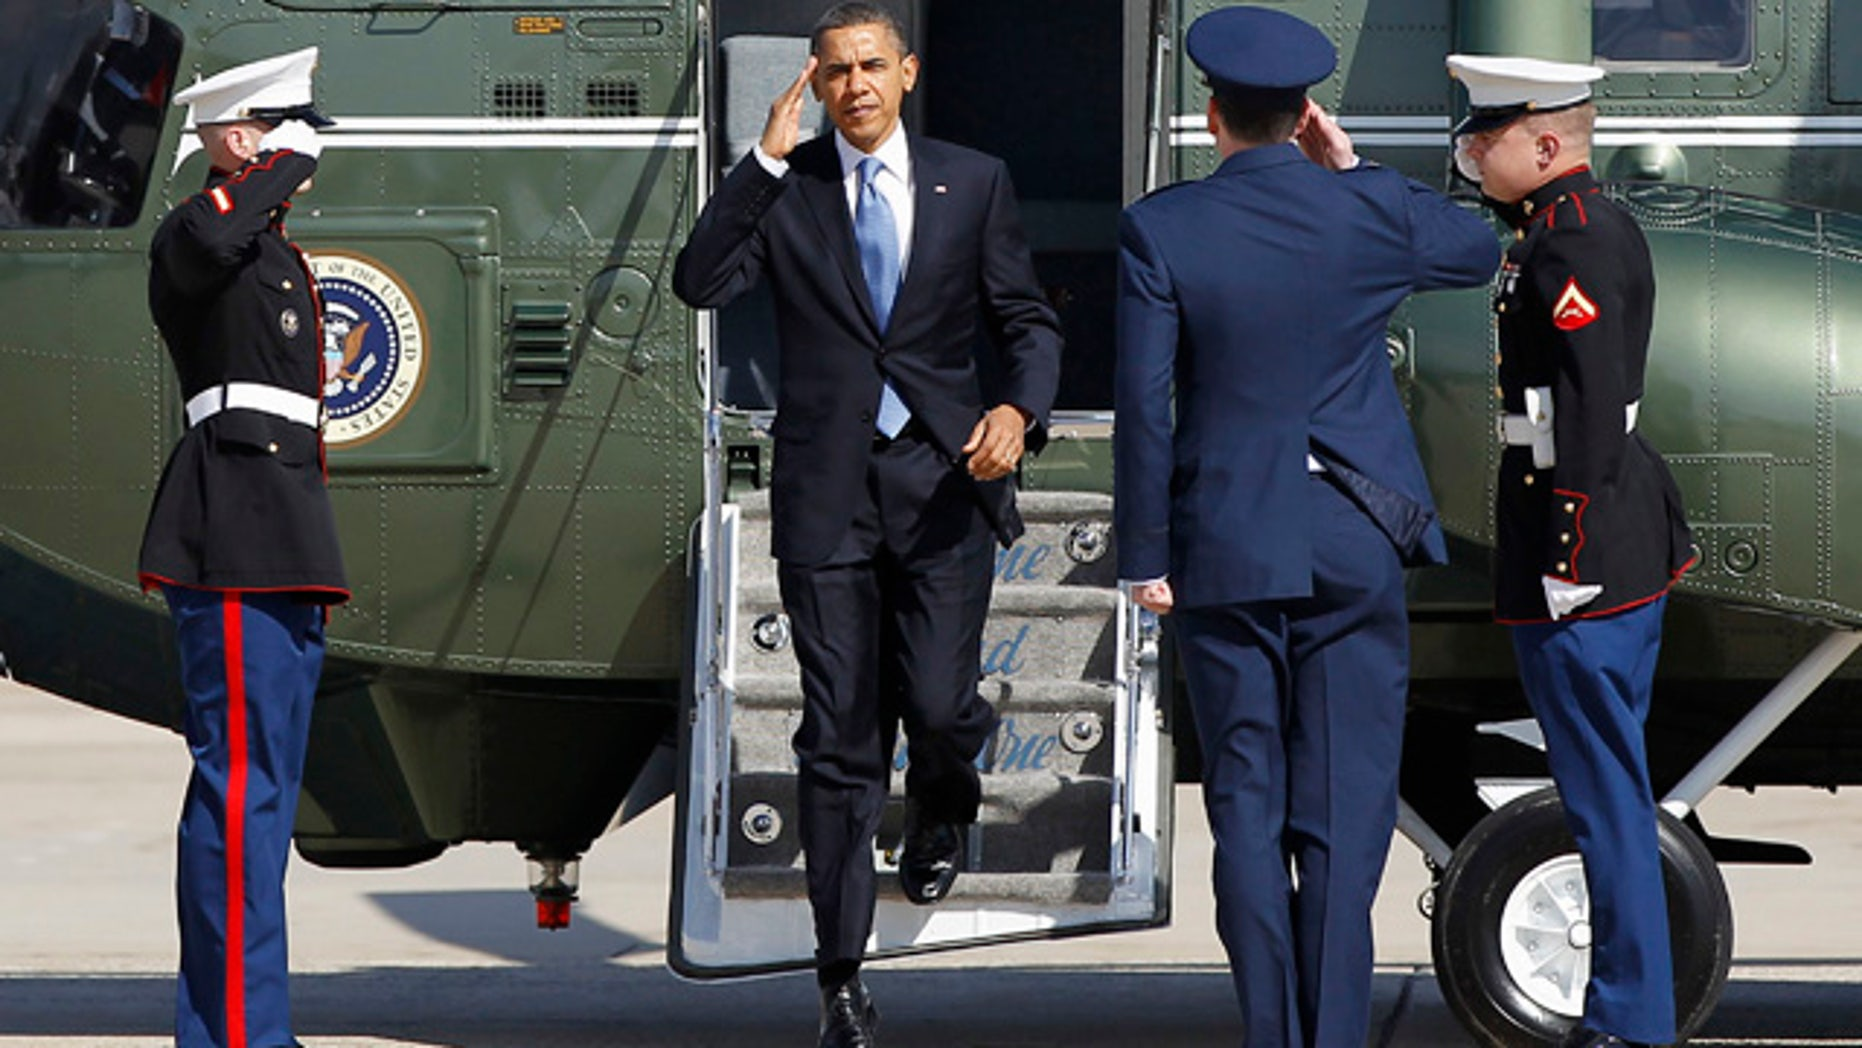 March, 7, 2012: President Obama steps off the Marine One helicopter before boarding Air Force One for his departure from Andrews Air Force Base, Md.